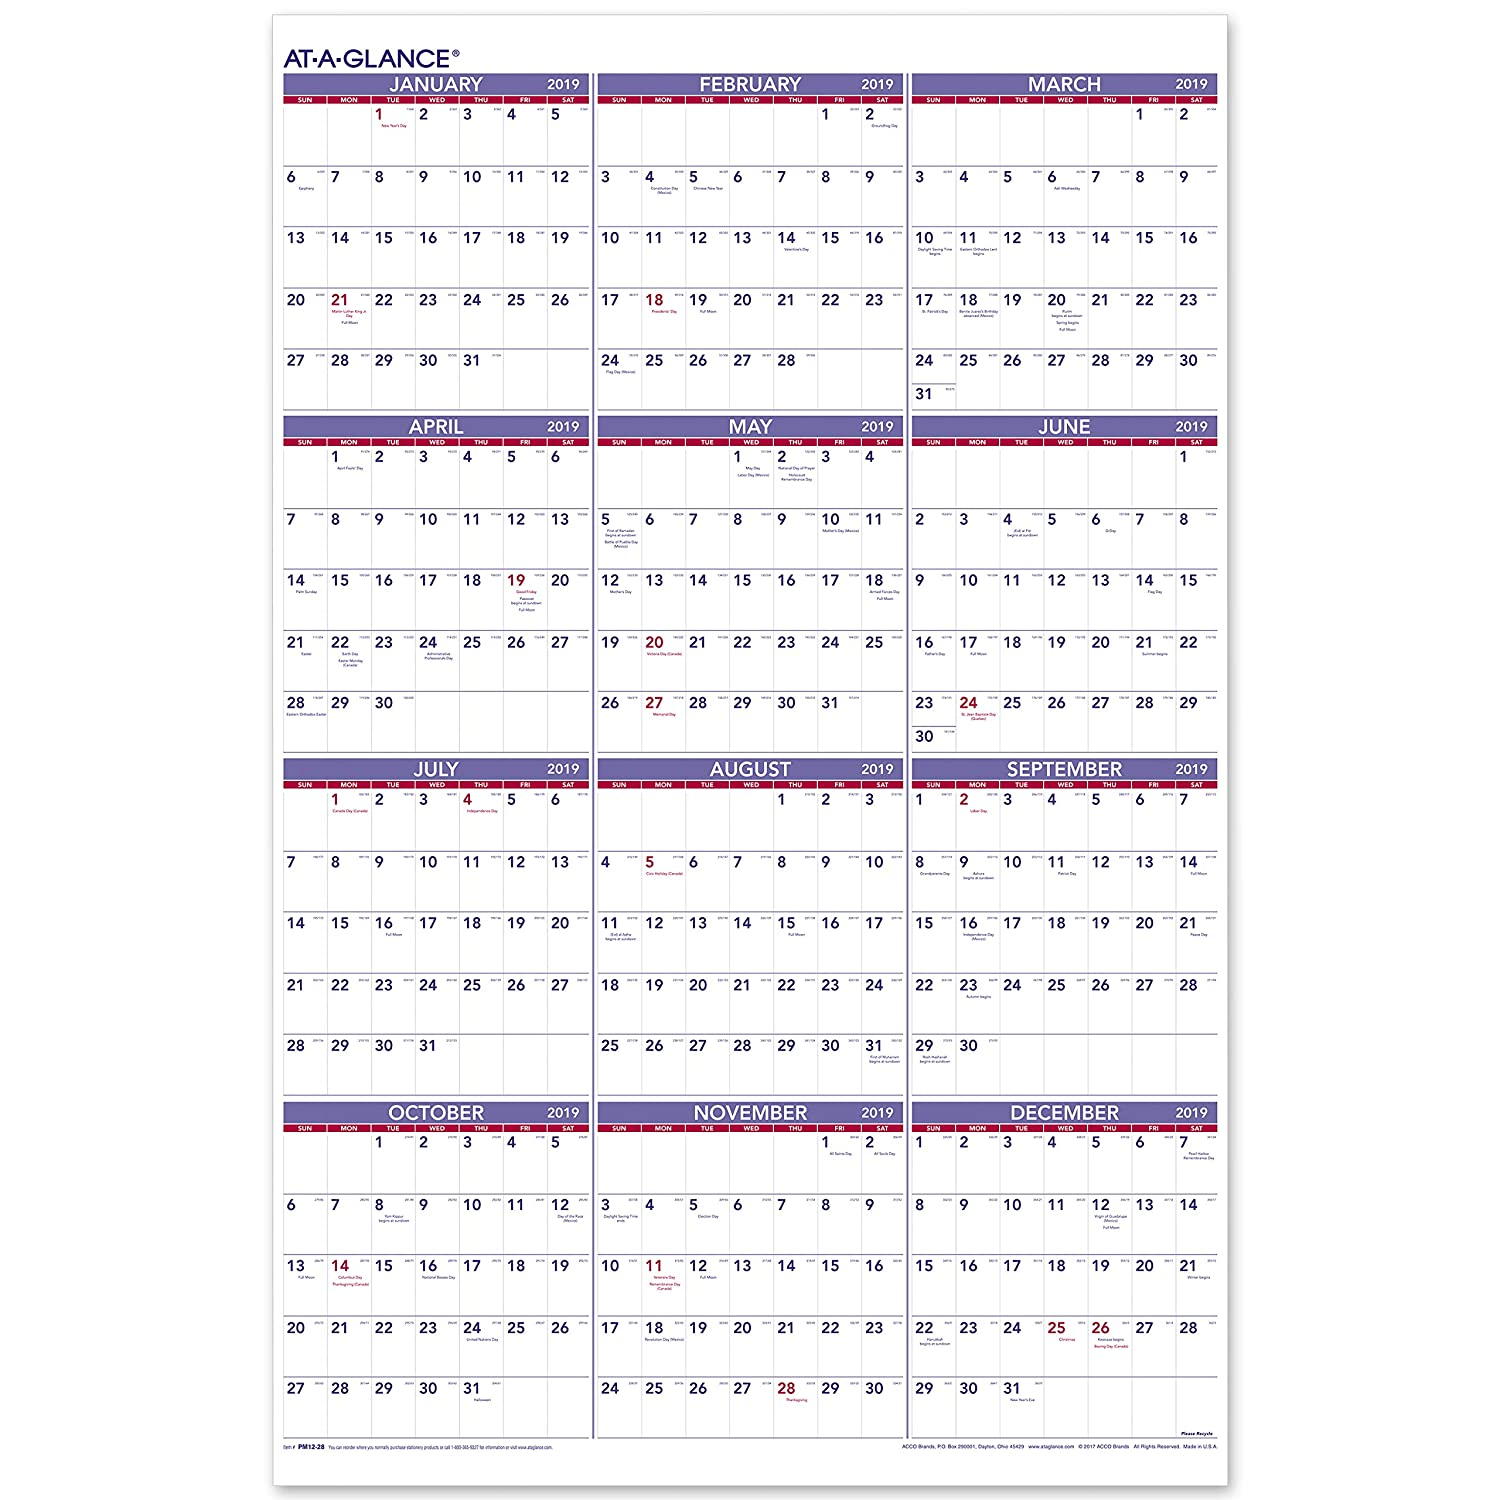 Calendario 2019 Week Number.At A Glance 2019 Yearly Wall Calendar 36 X 24 Xlarge Vertical Pm1228